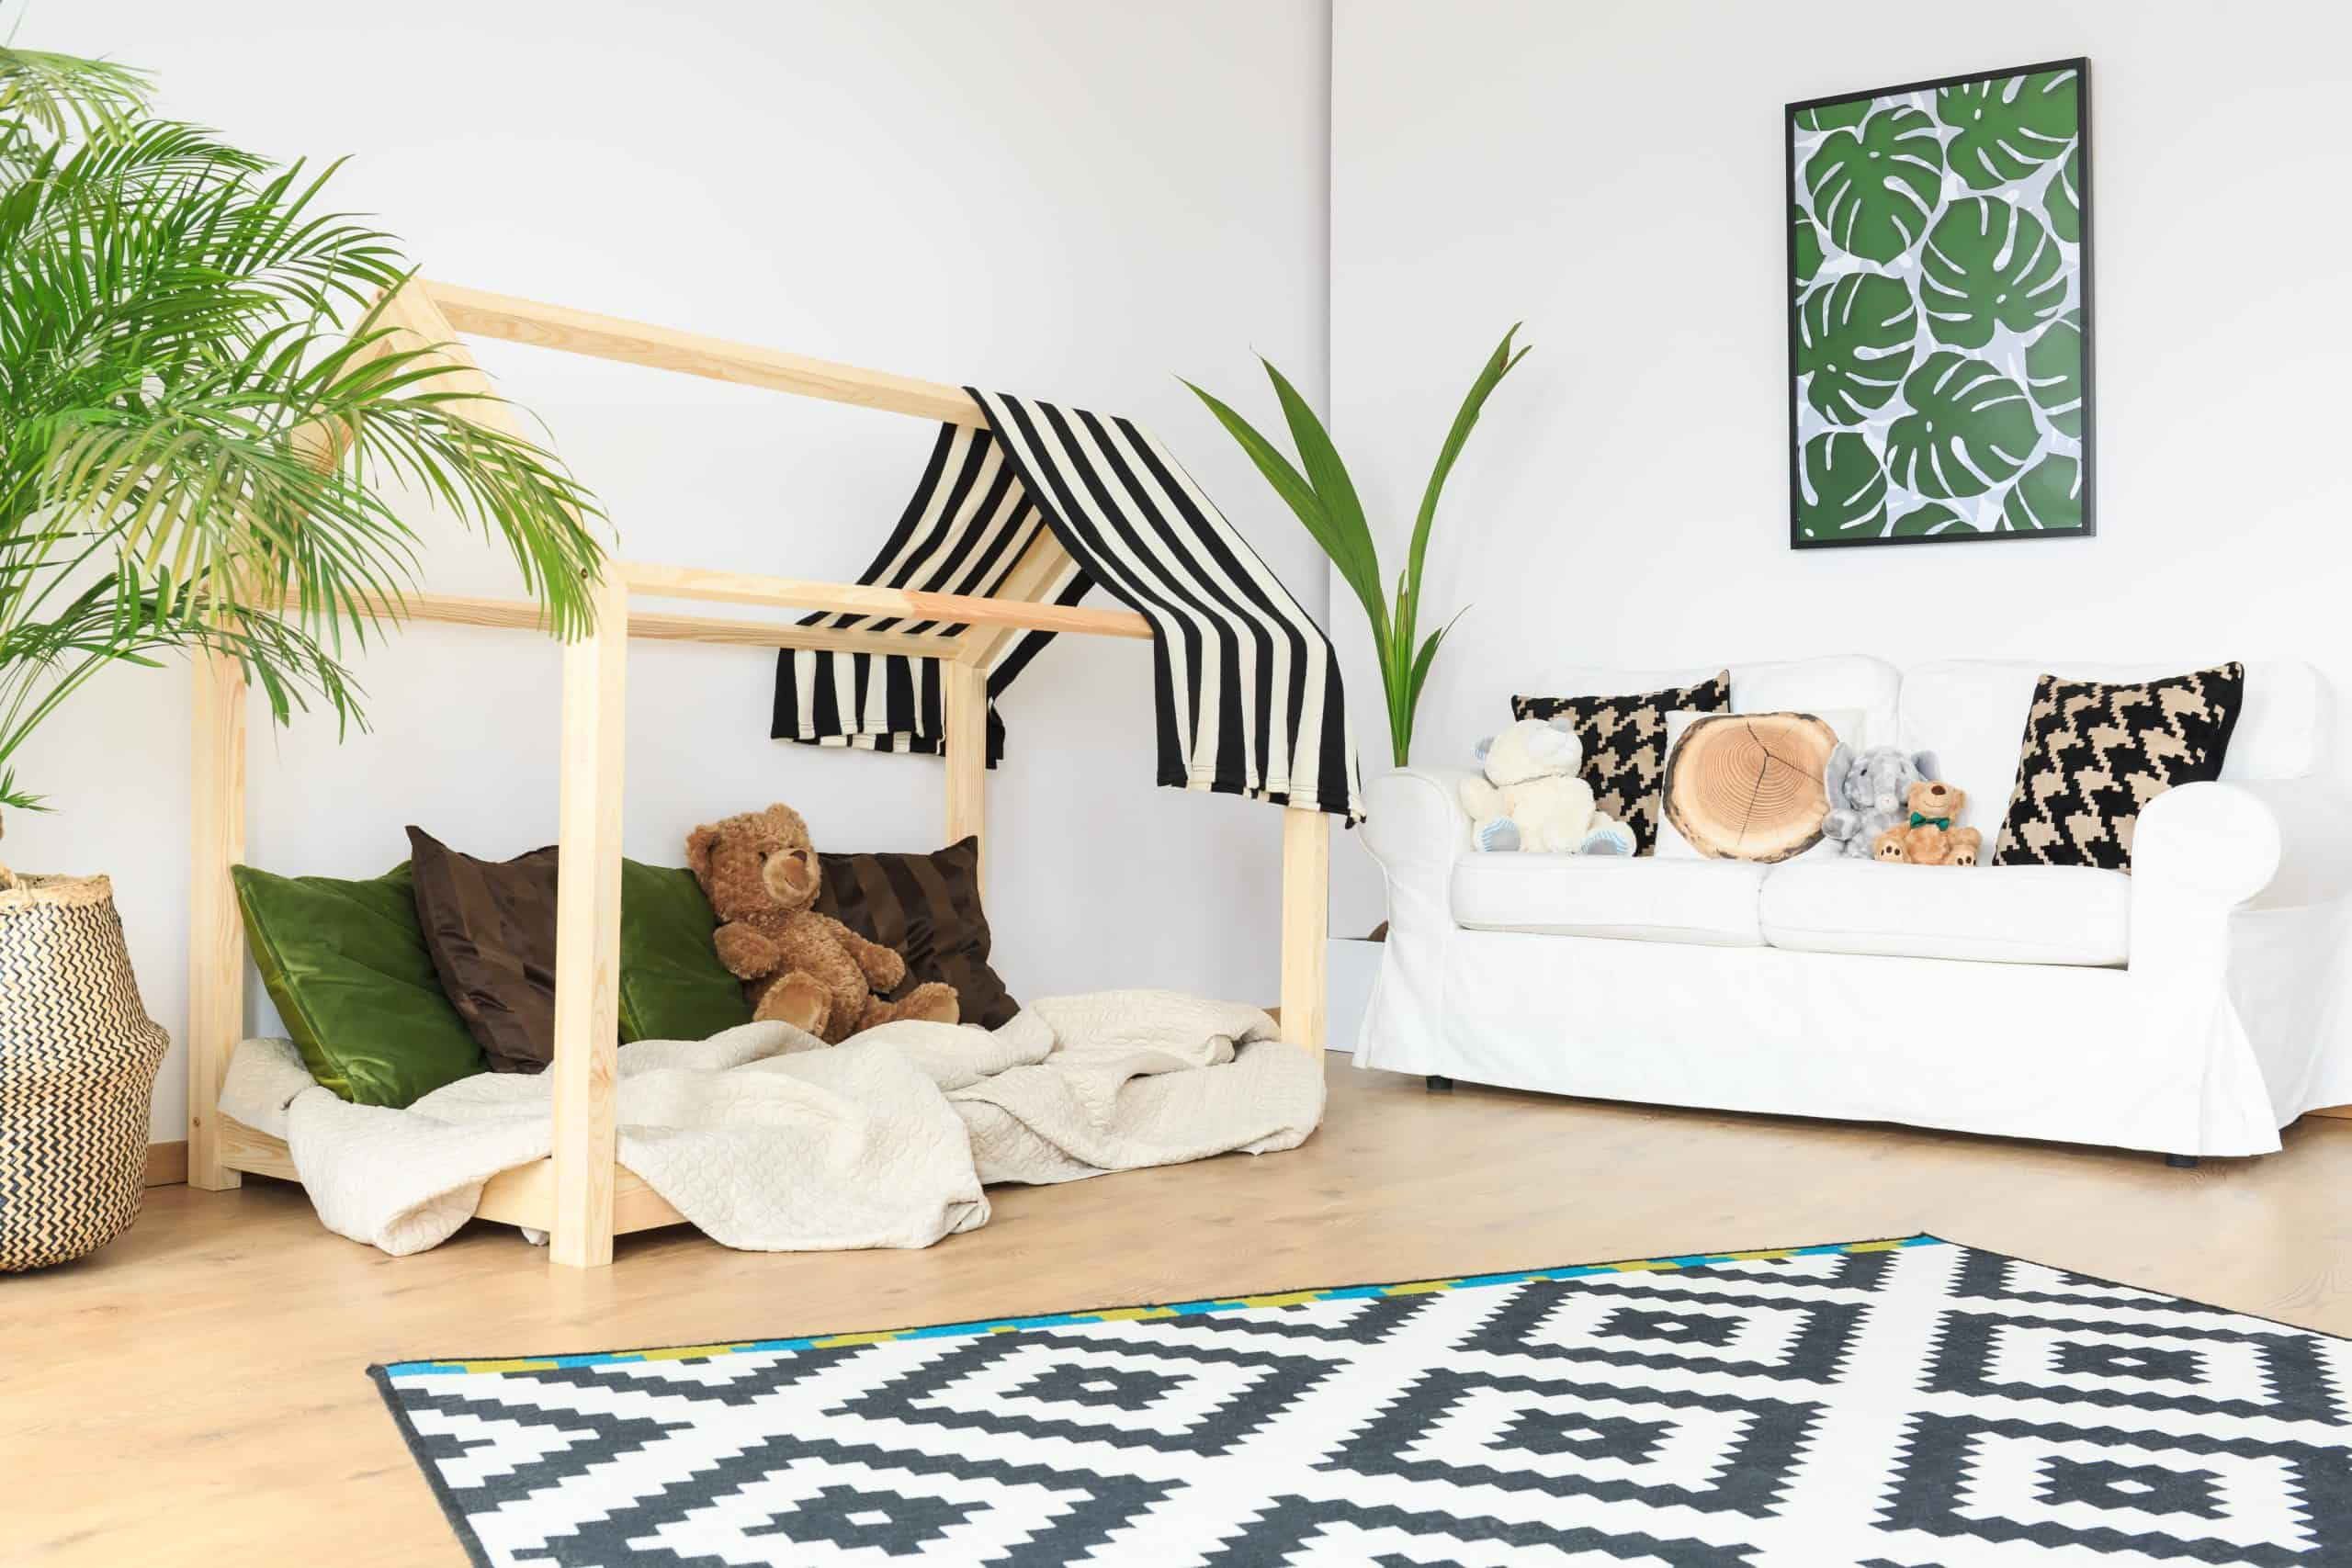 rug for child's room Clean tranquil open space in natural bright kids room